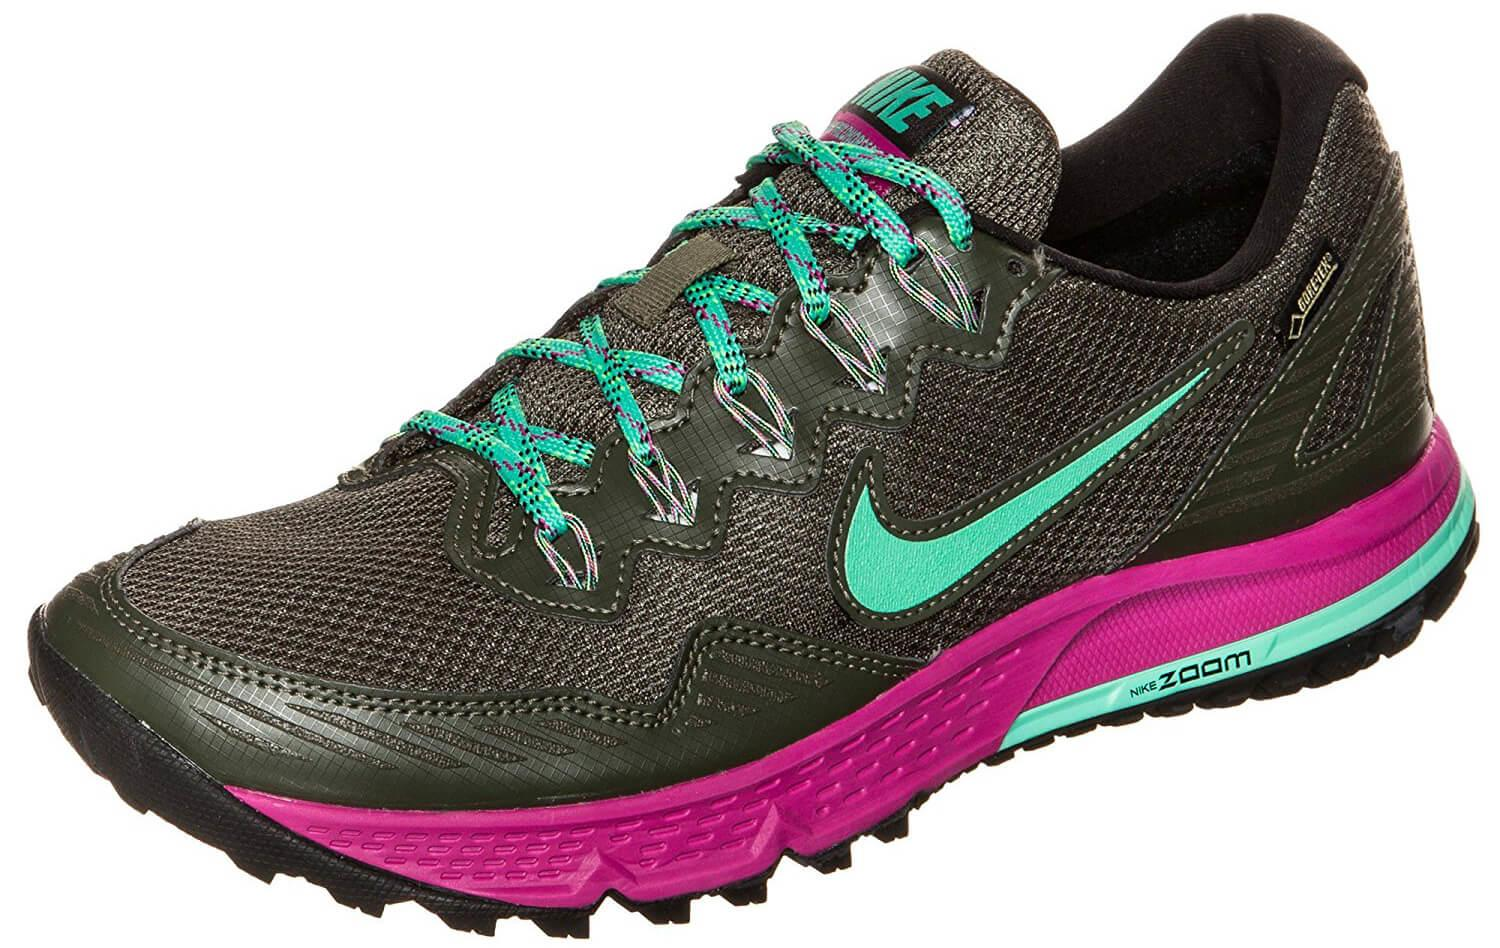 a3935e8d81ab64 Nike Air Zoom Wildhorse 3 GTX - Buy or Not in Mar 2019